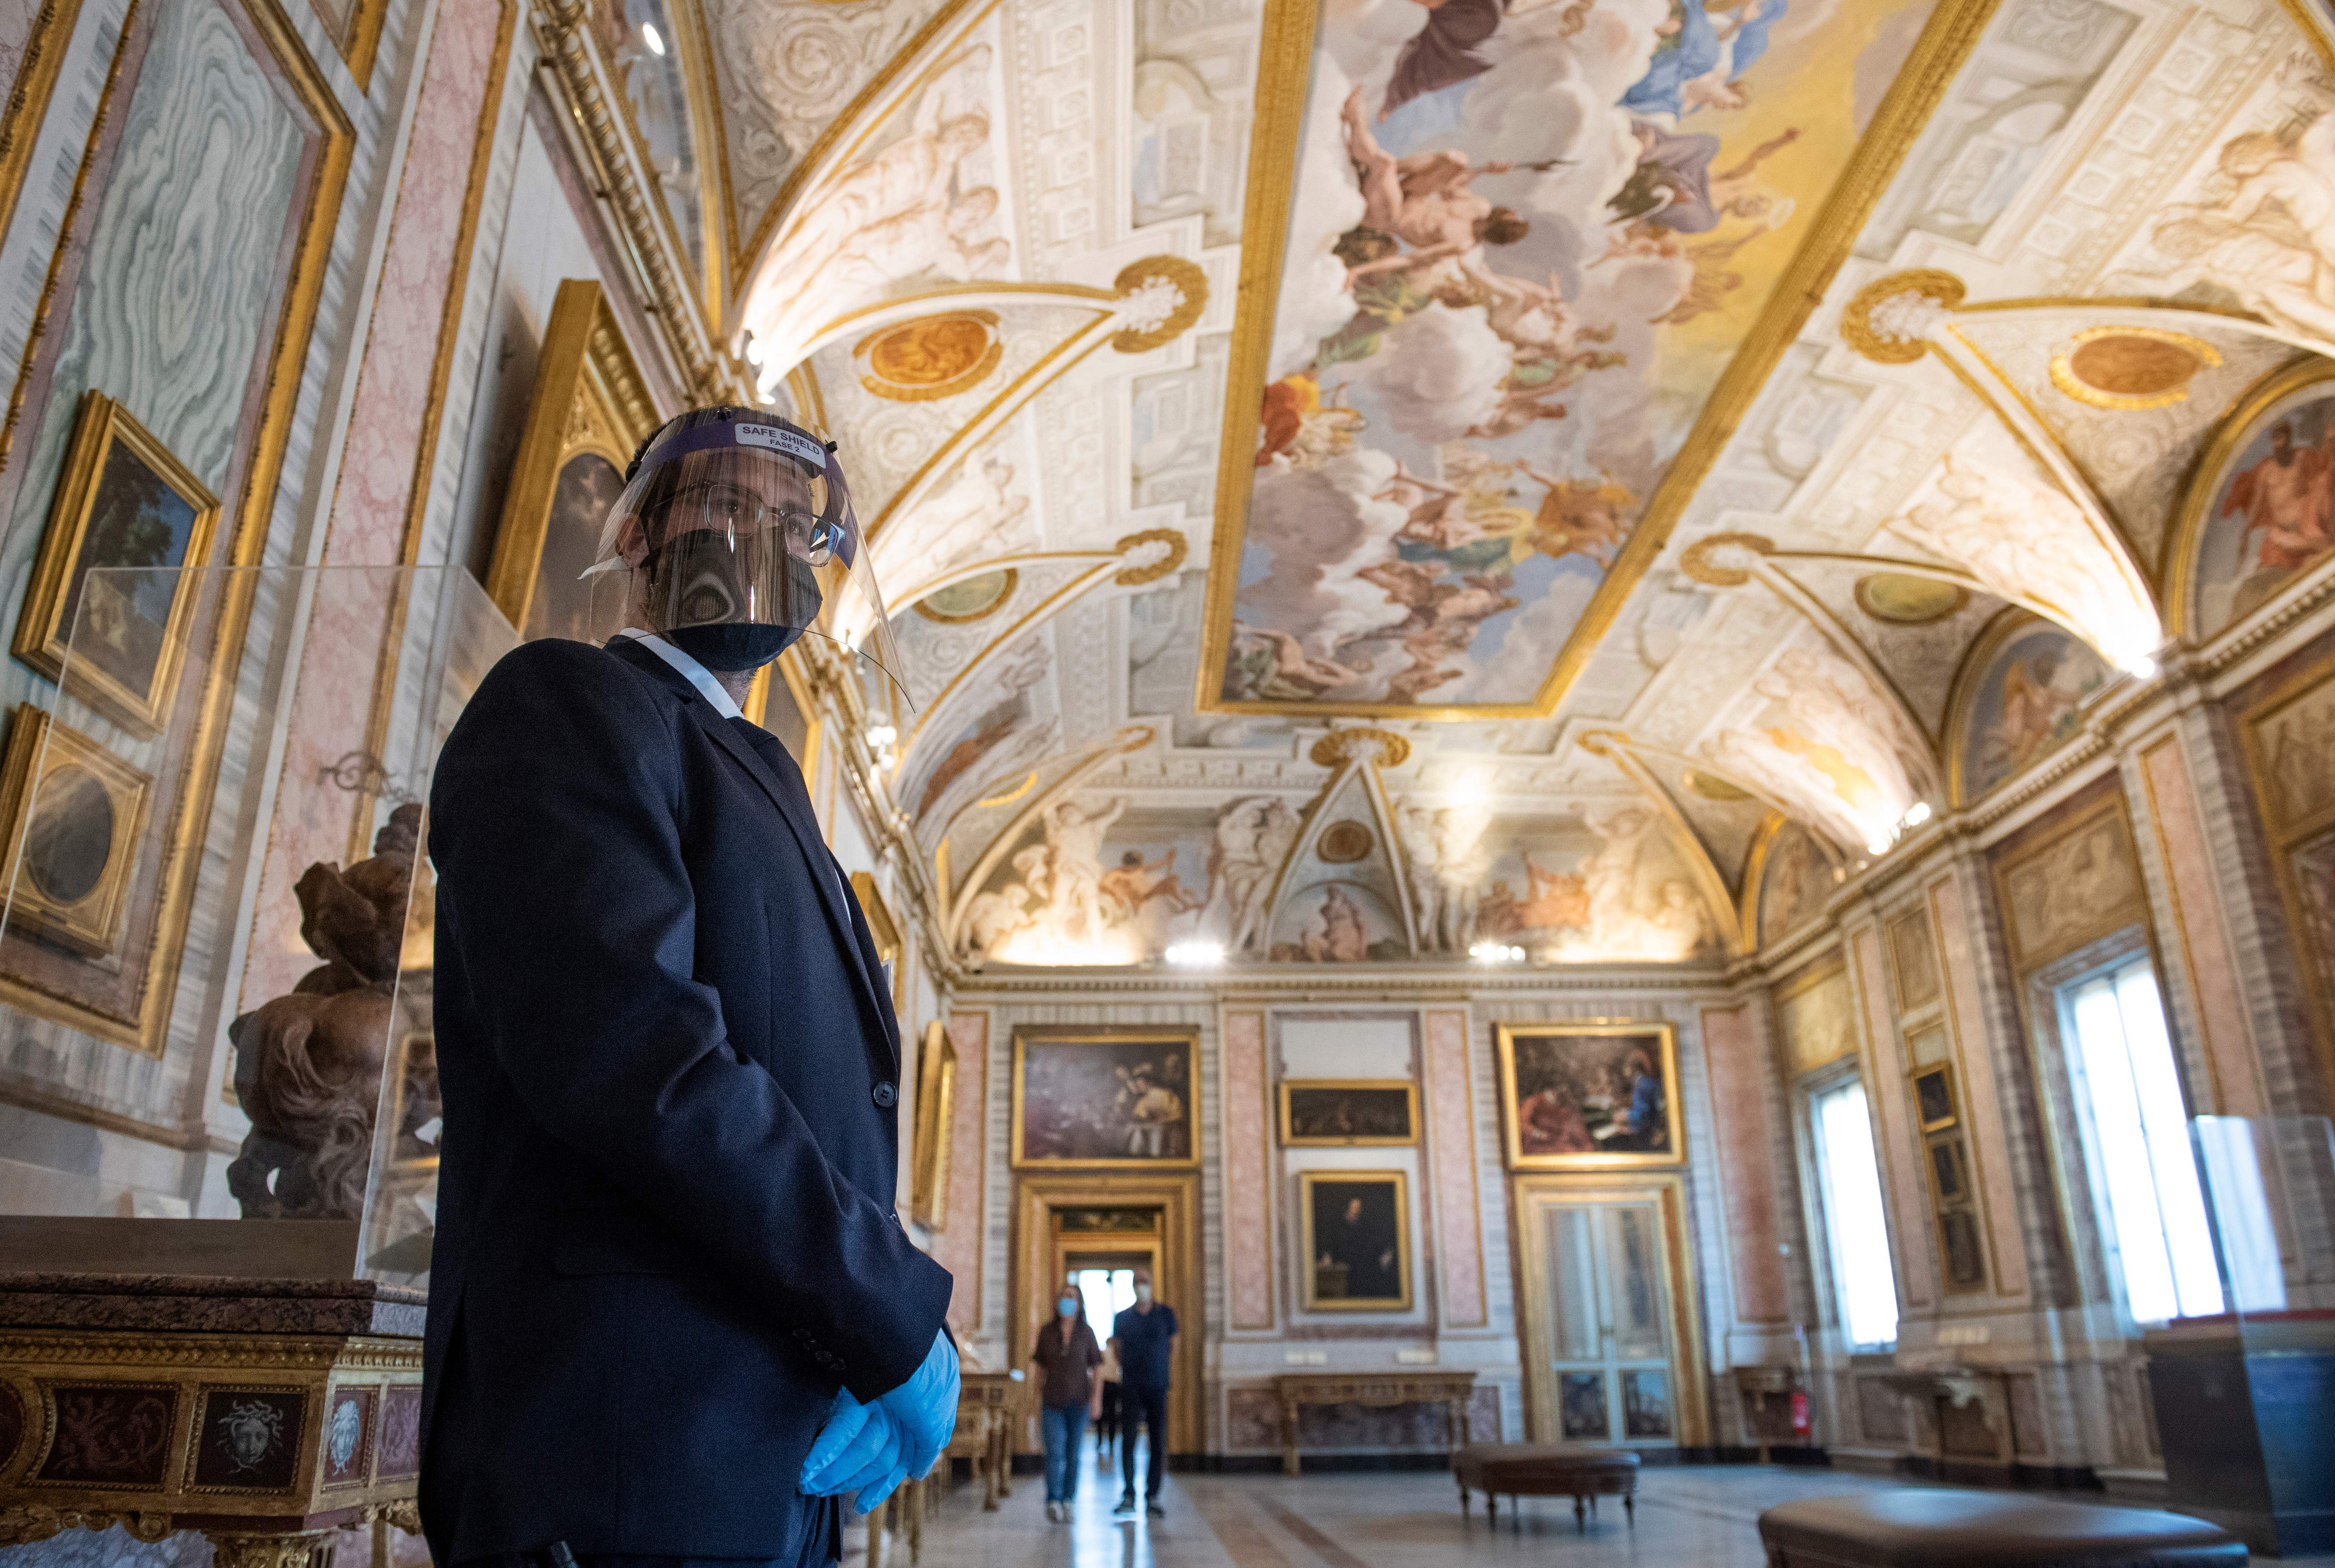 A museum attendant wearing a face mask and shield stands in a room at the Galleria Borghese museum in Rome on May 19, 2020. (Photo by TIZIANA FABI/AFP via Getty Images)